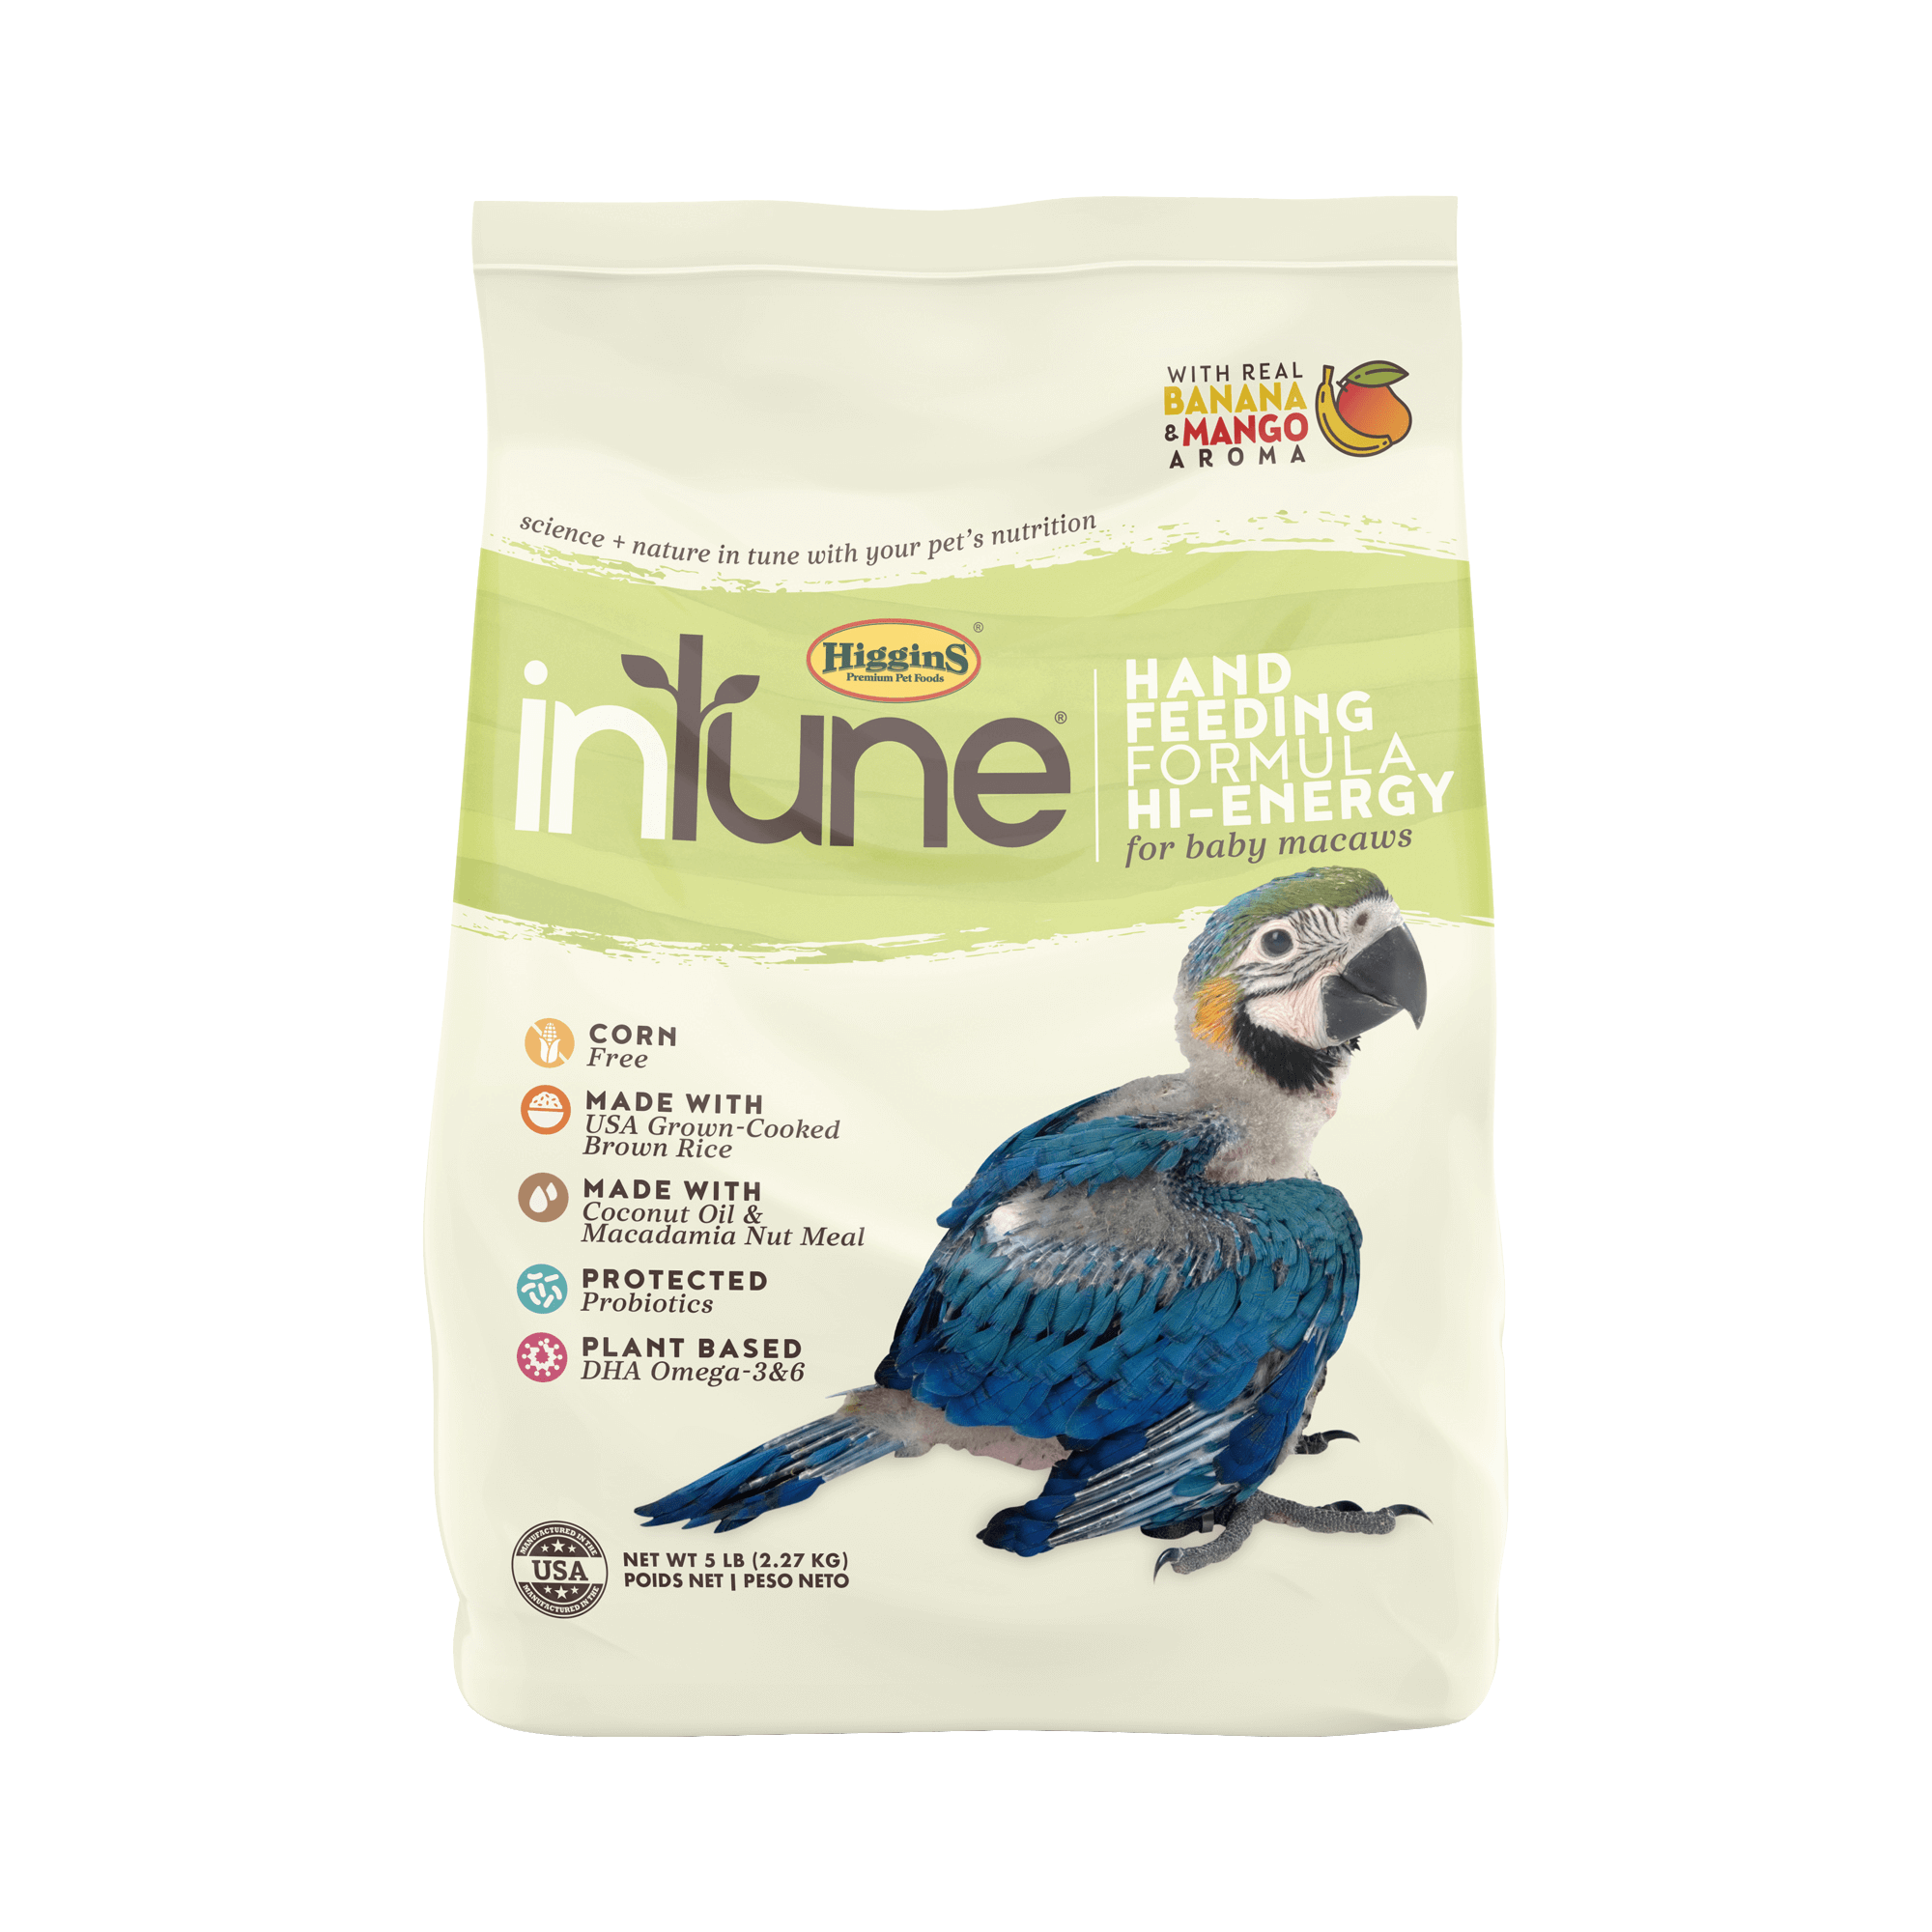 InTune Natural - Handfeeding Formula Hi Energy | 2.27kg - Click to enlarge picture.